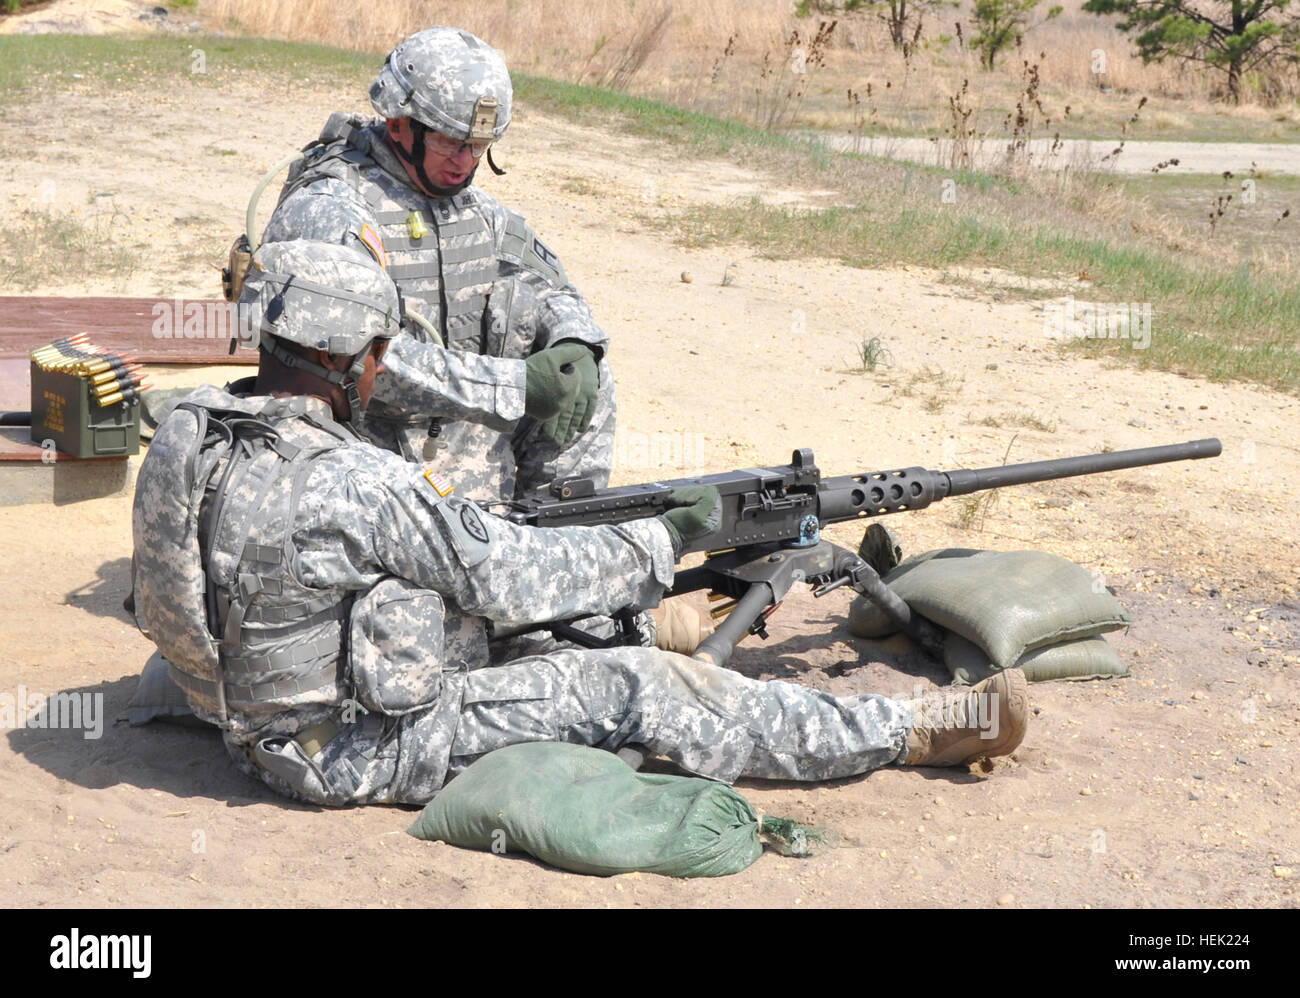 307th Brigade Support Battalion Stock Photos Amp 307th Brigade Support Battalion Stock Images